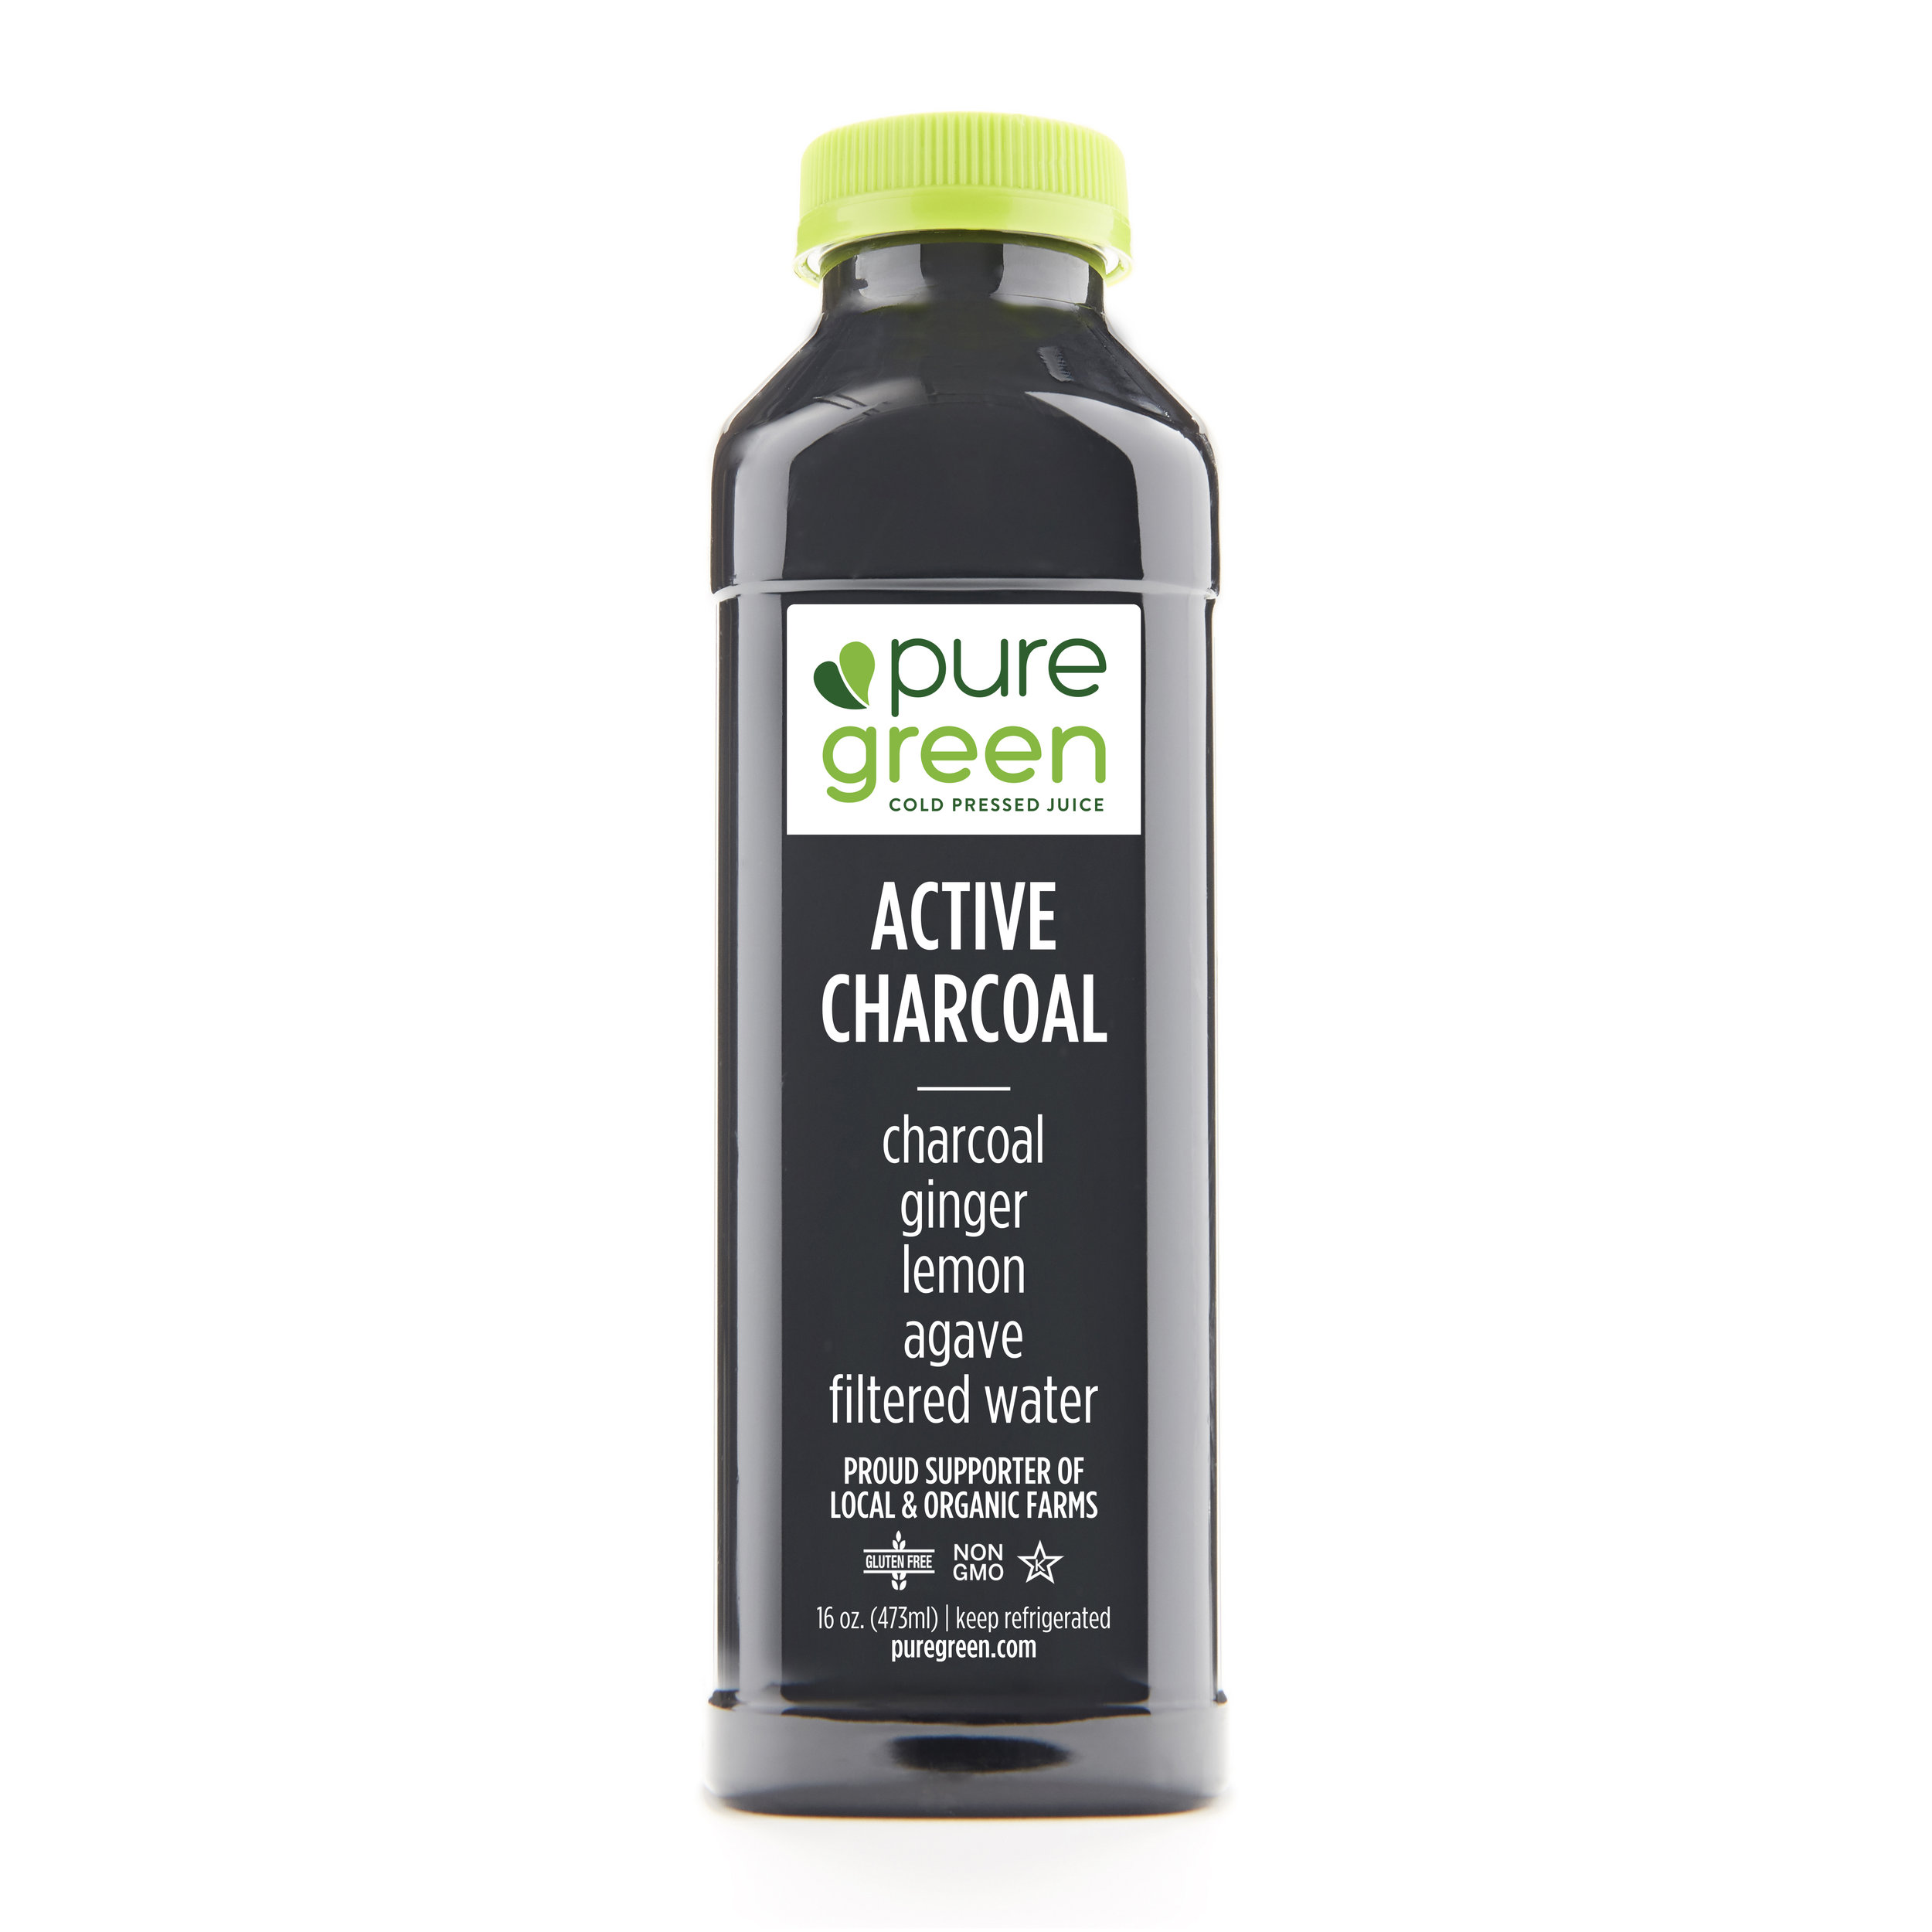 Active Charcoal 16oz Juice.jpg